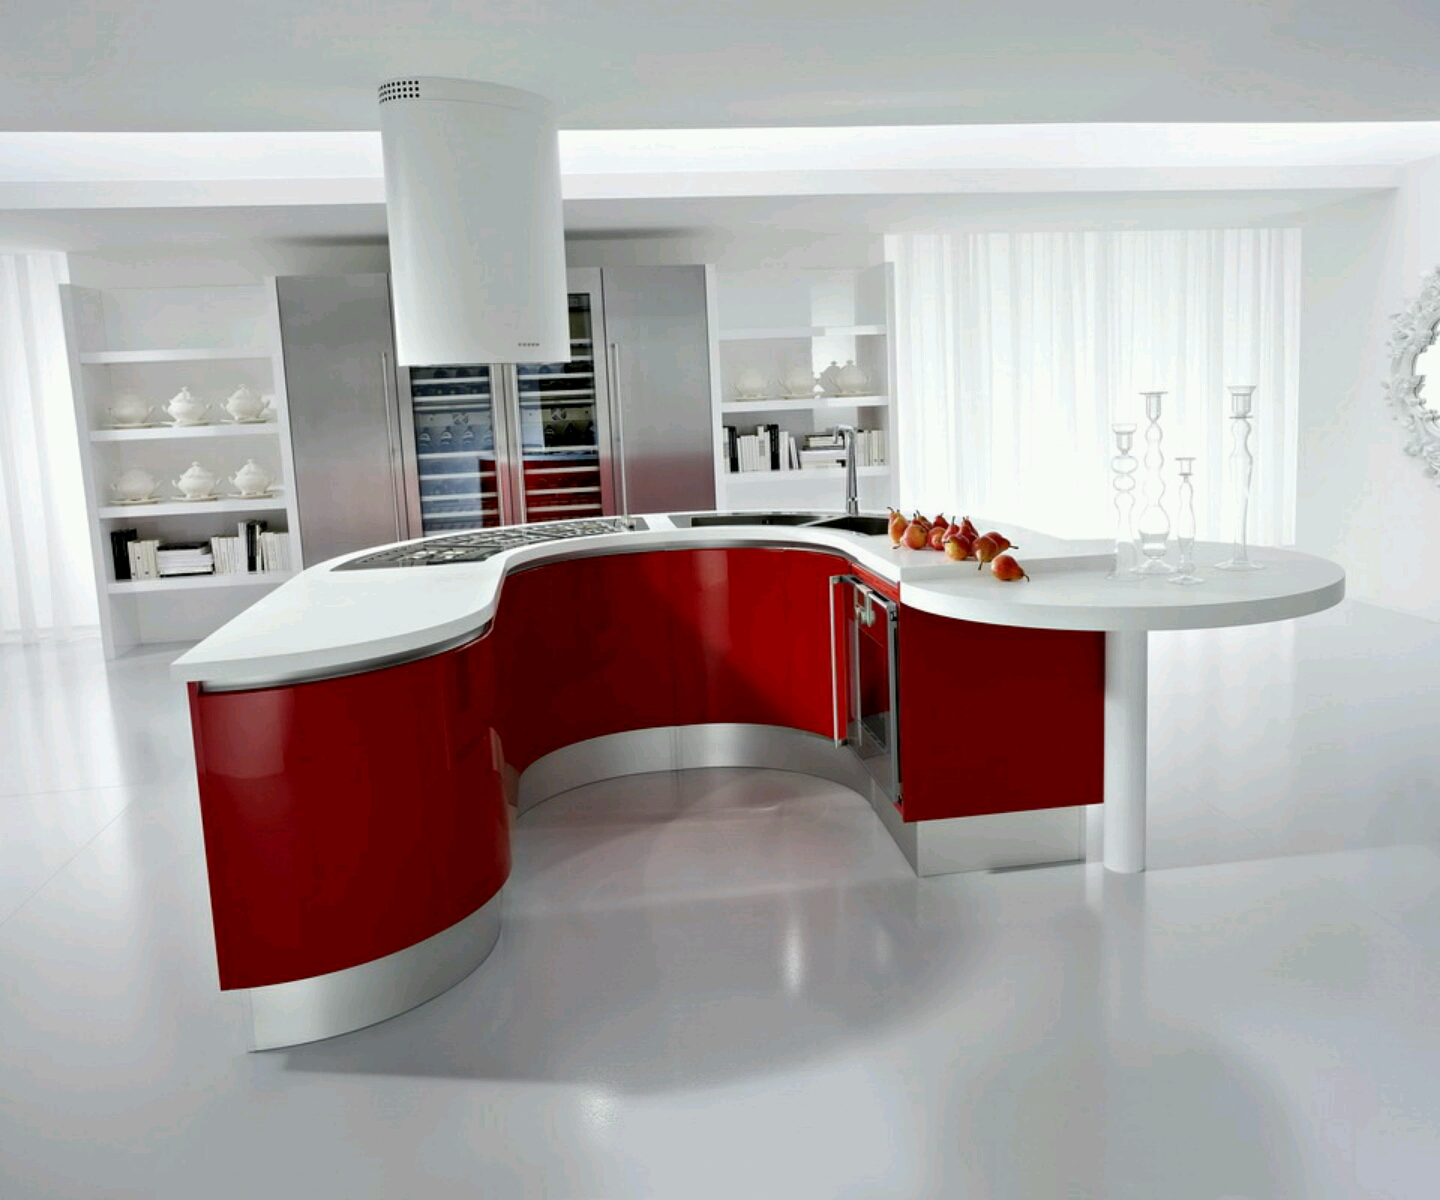 Modern kitchen cabinets designs ideas furniture gallery for New kitchen ideas photos